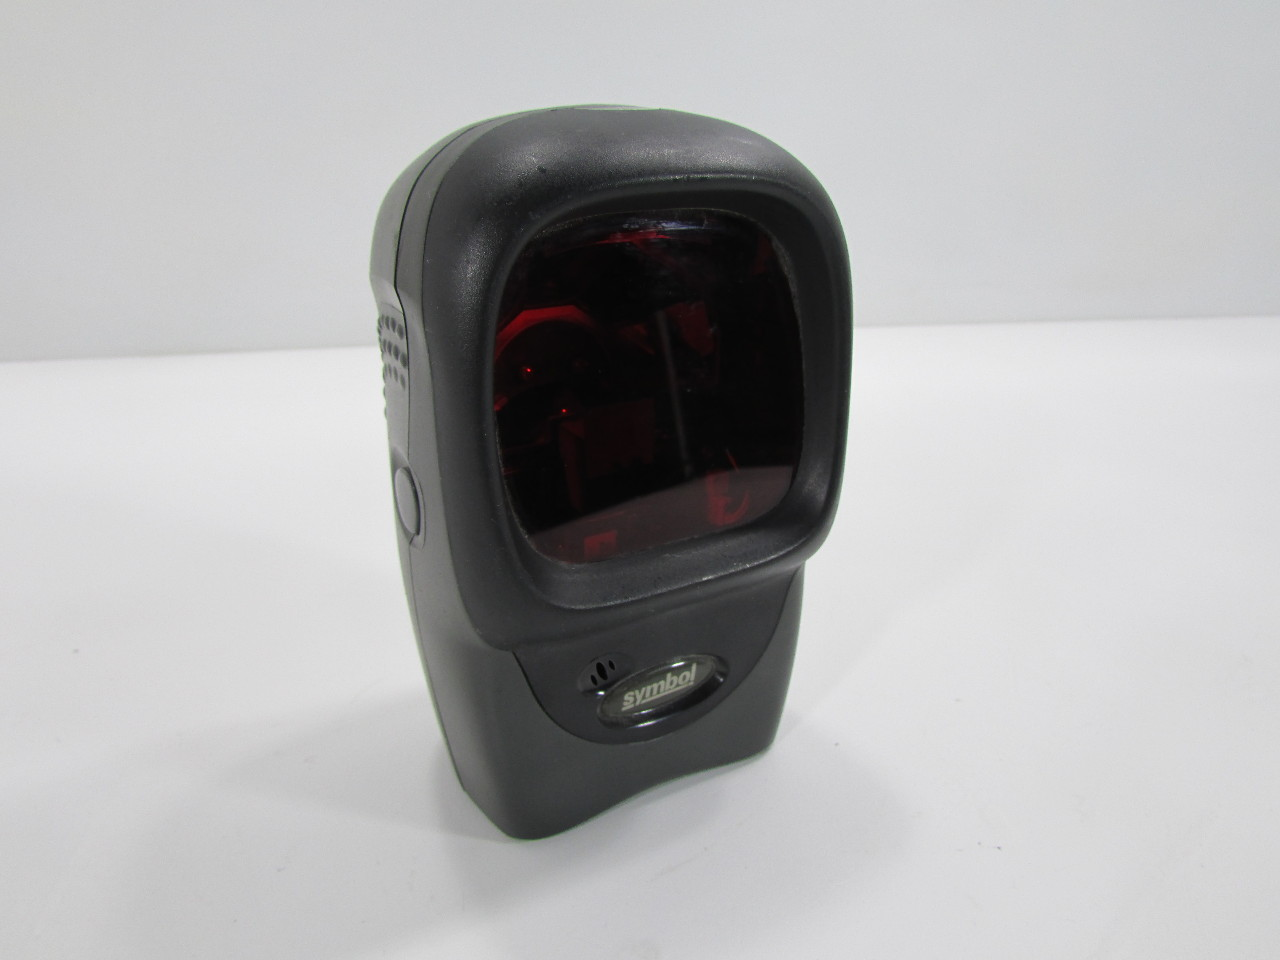 Used,For Symbol LS9208 barcode scanner(no stand),100% working good